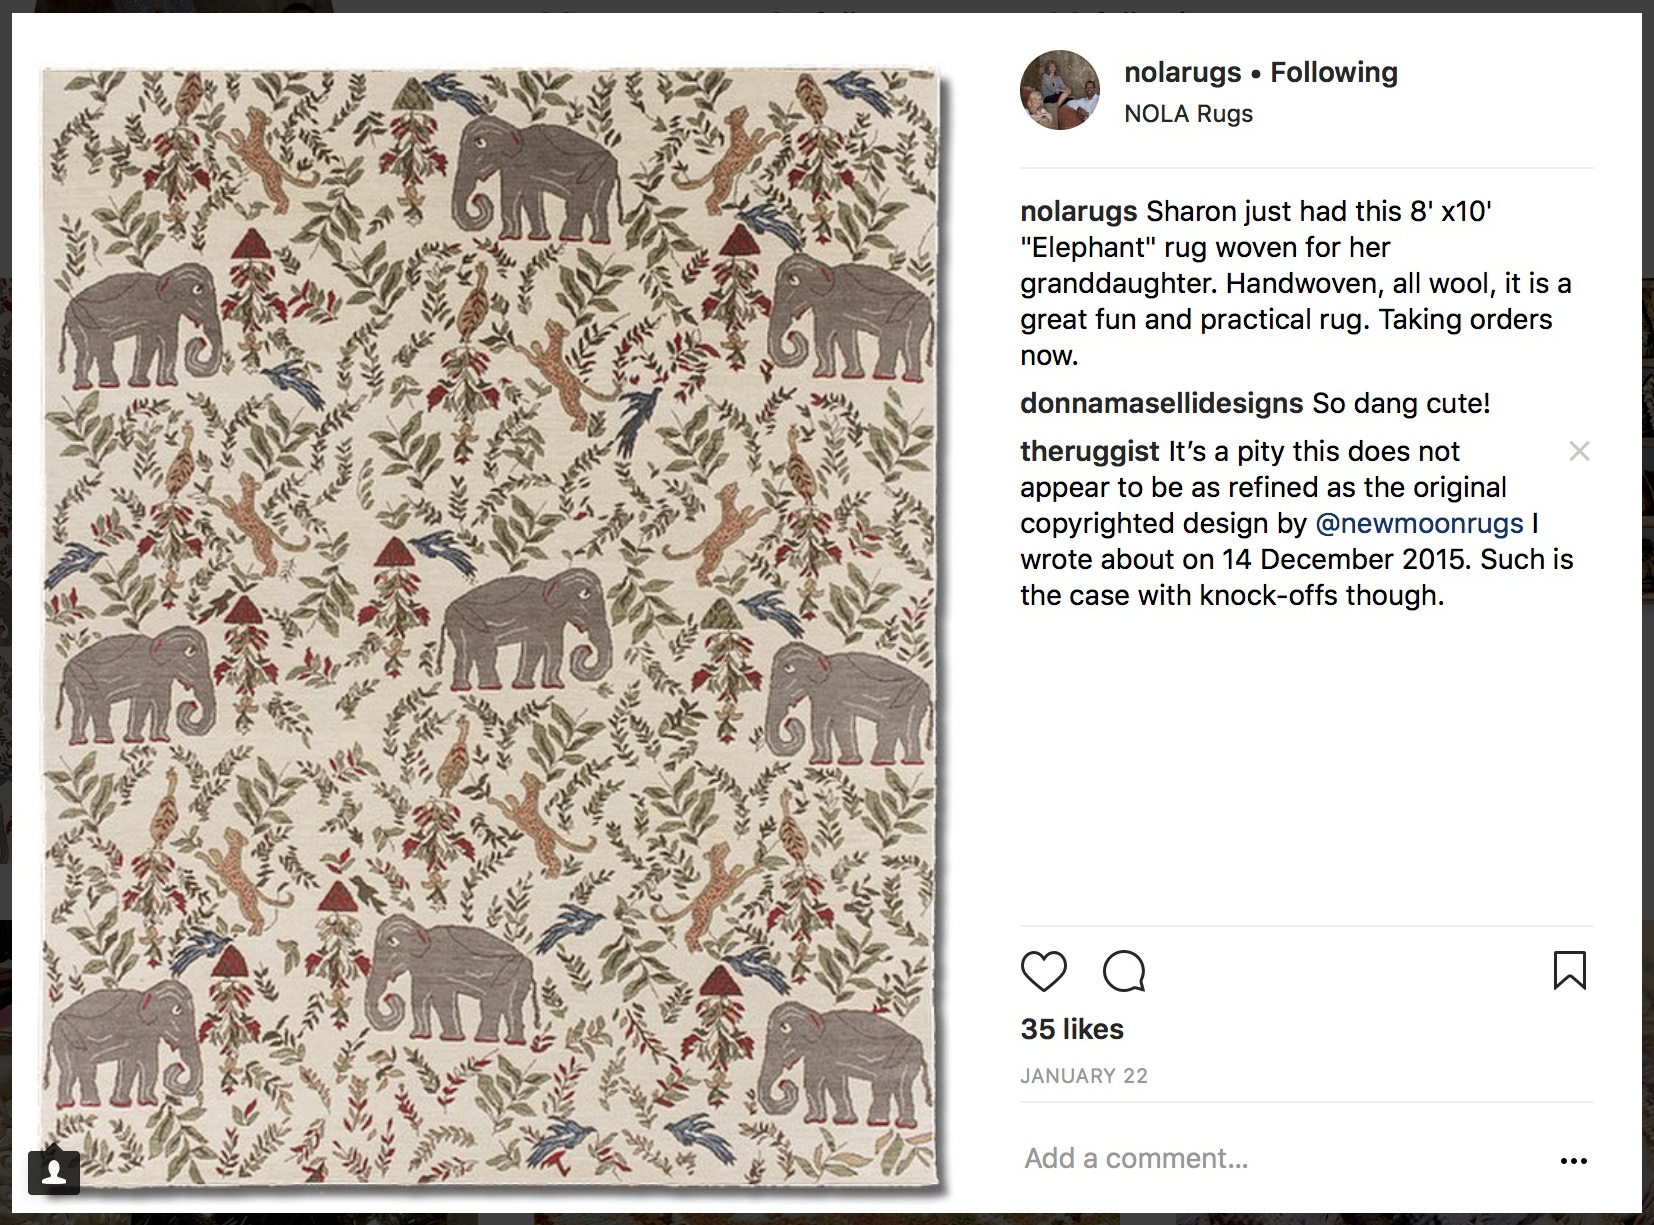 """Screen-capture of an Instagram post by Nola Rugs of New Orleans, Louisiana depicting a knockoff of """"Menagerie' by New Moon.' 